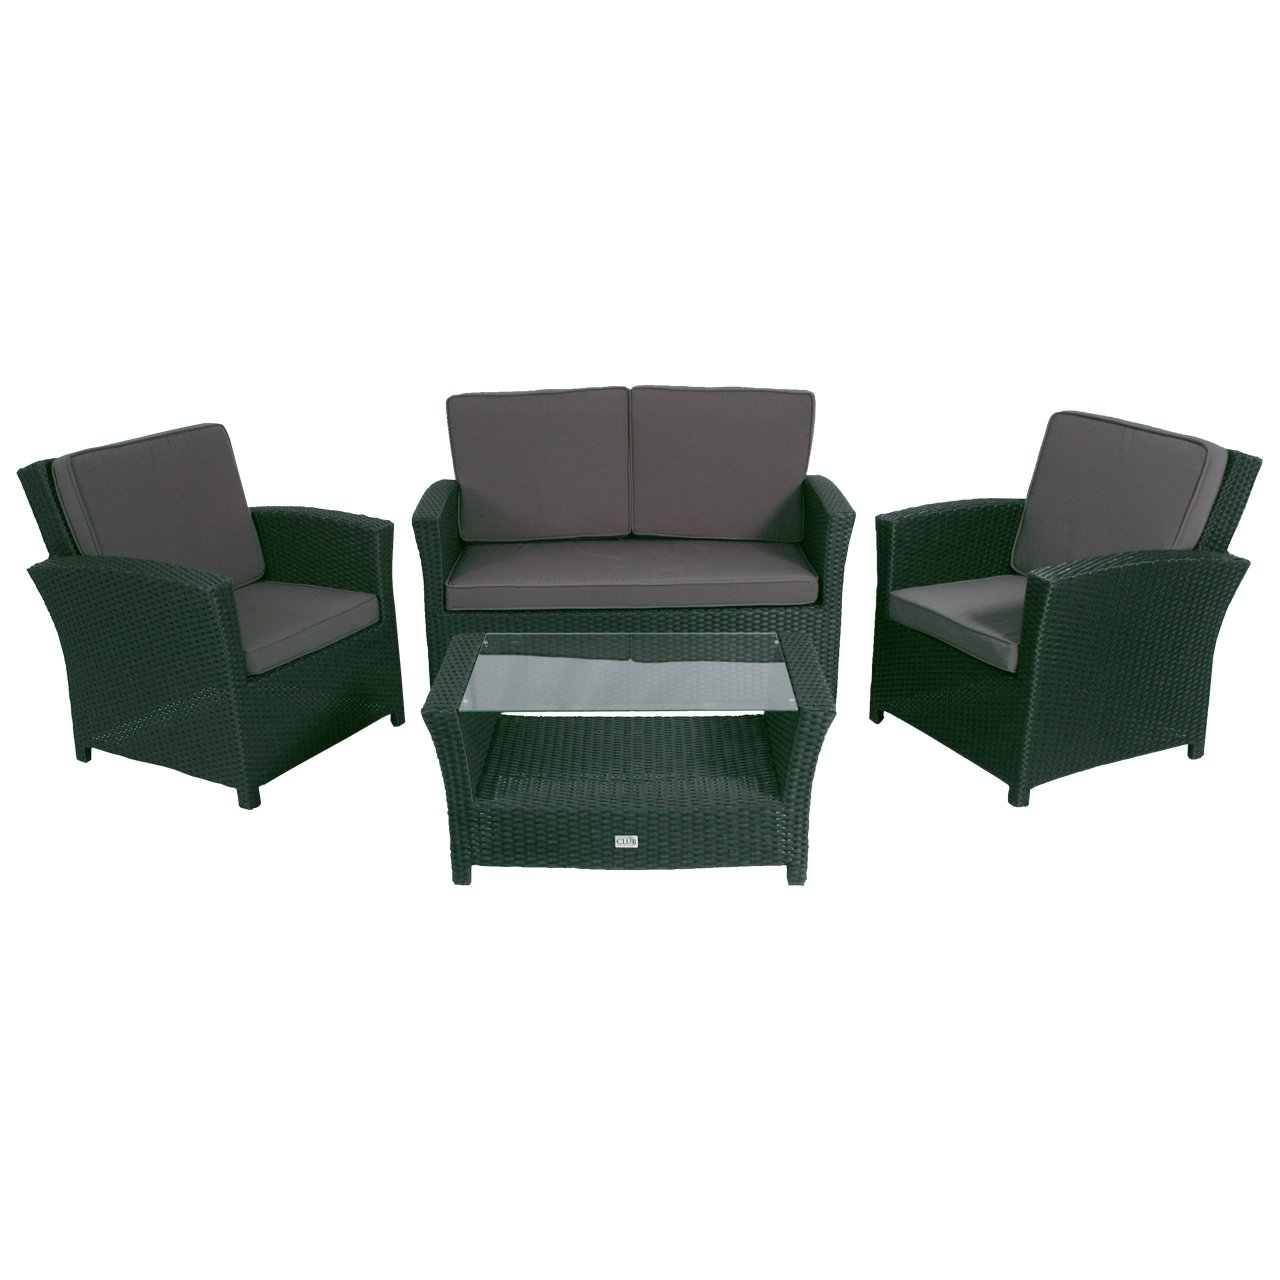 poly rattan lounge set 4tlg schwarz gartenm bel tisch glasplatte online bestellen. Black Bedroom Furniture Sets. Home Design Ideas